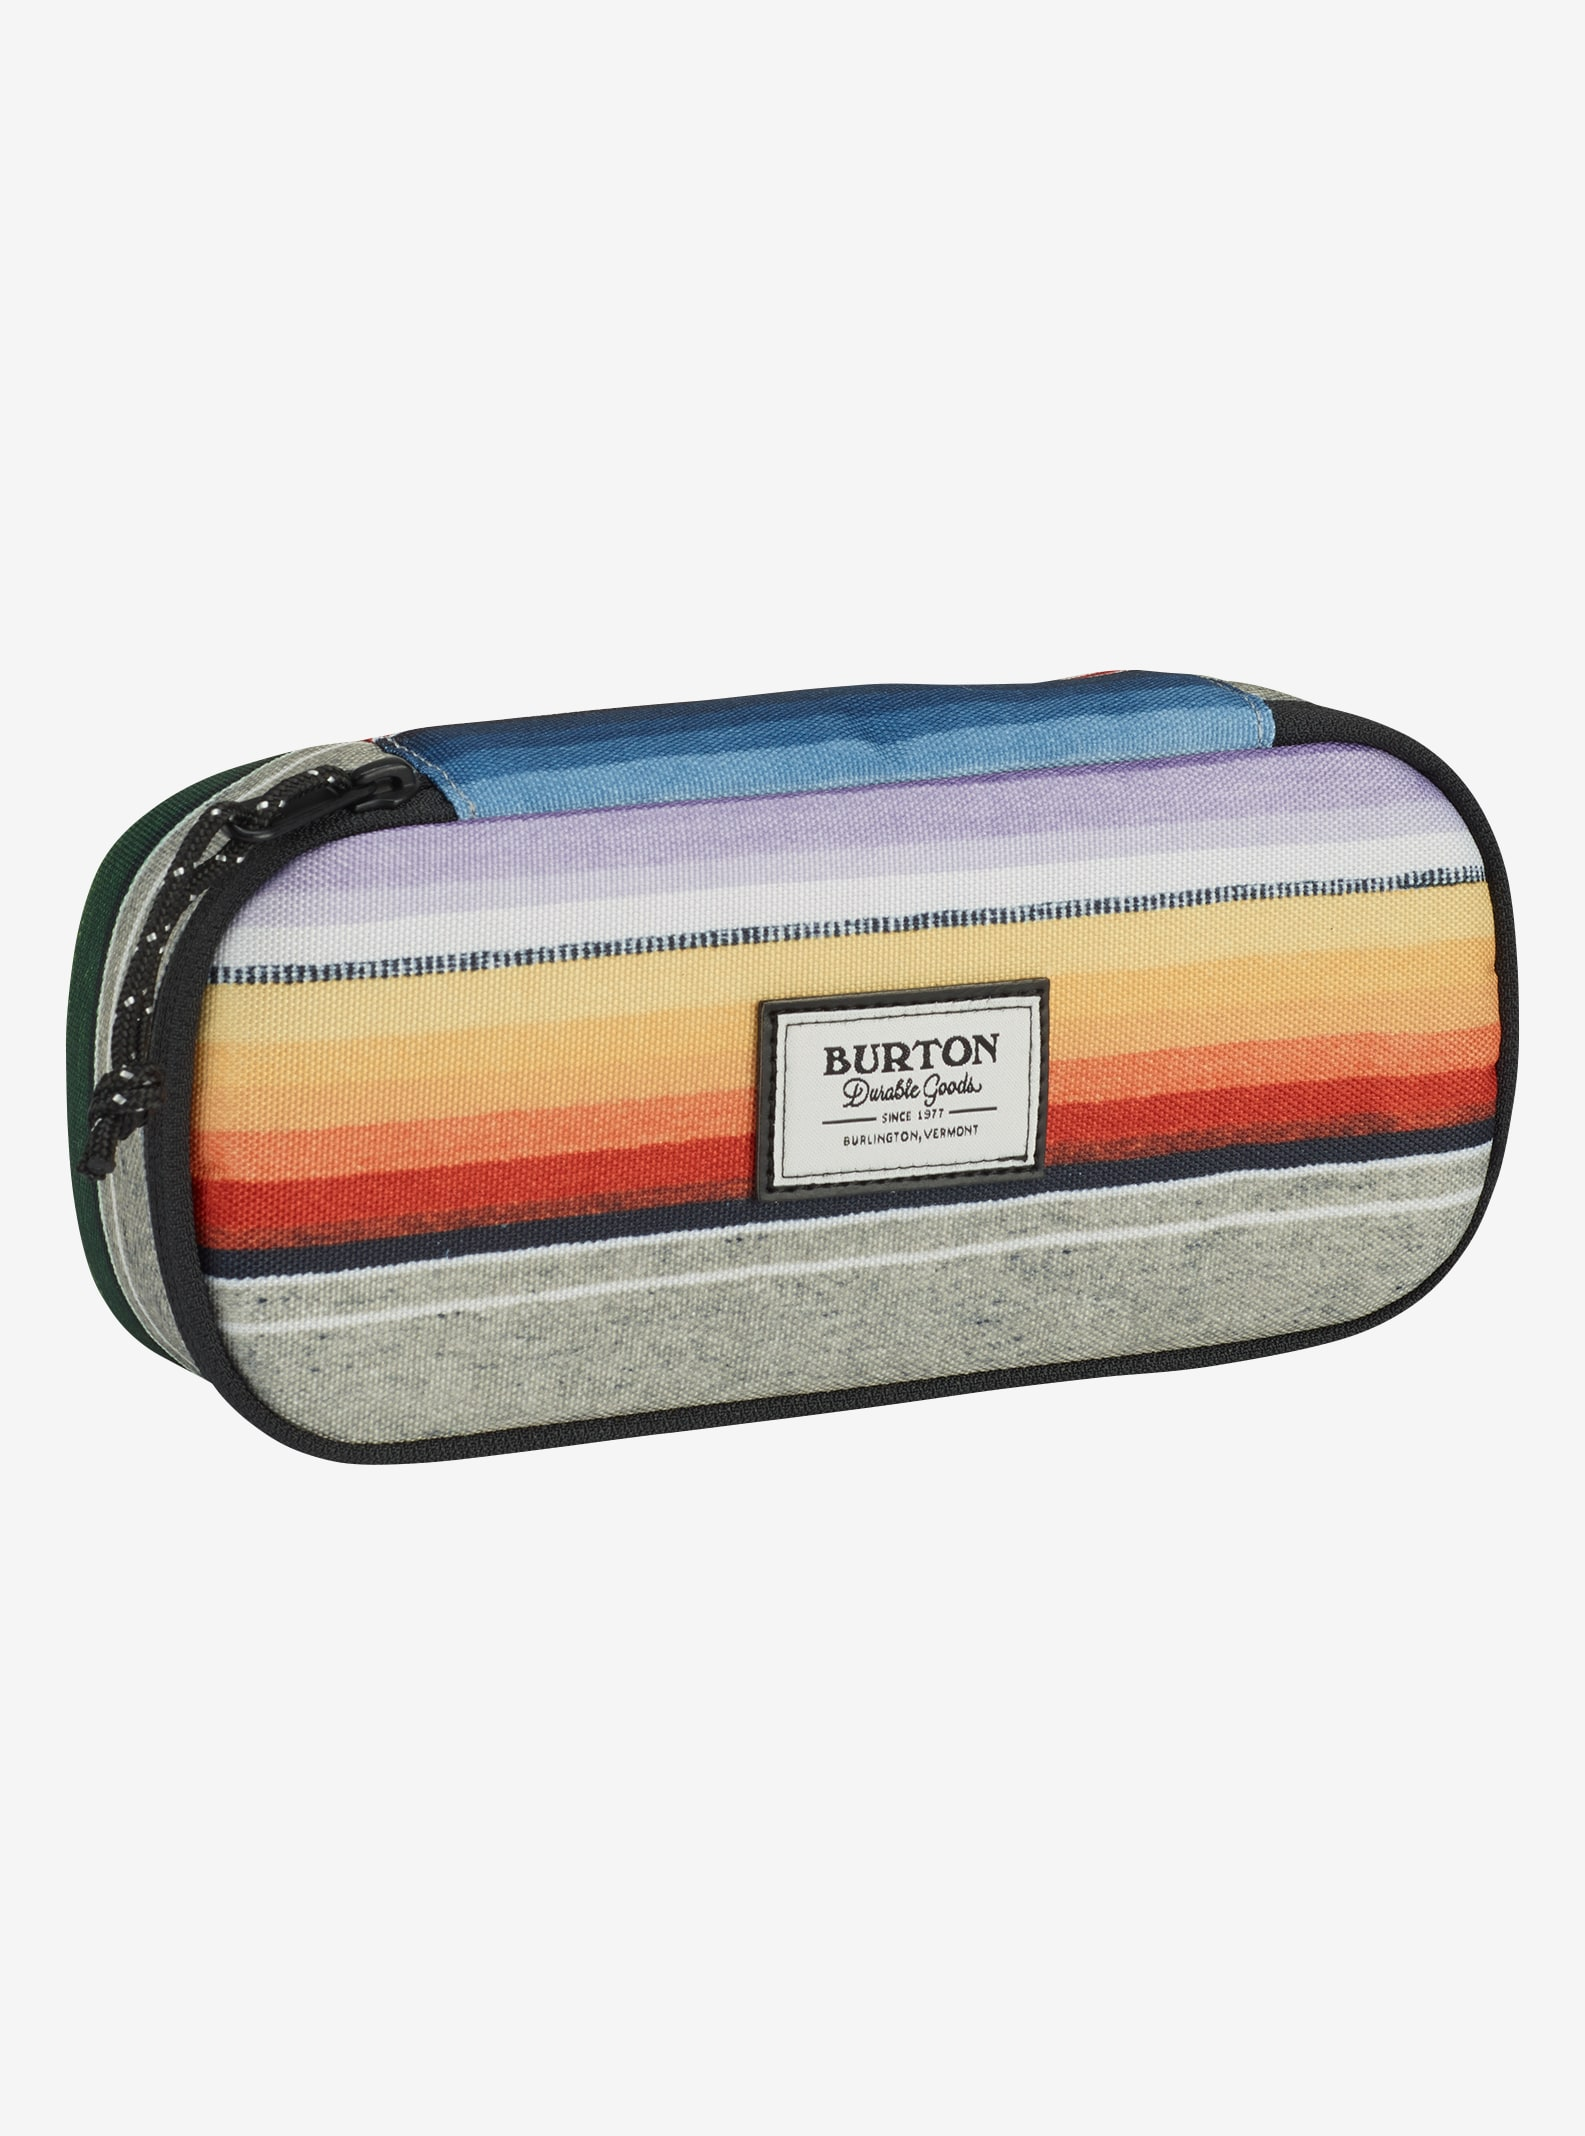 Burton Switchback Case shown in Bright Sinola Stripe Print